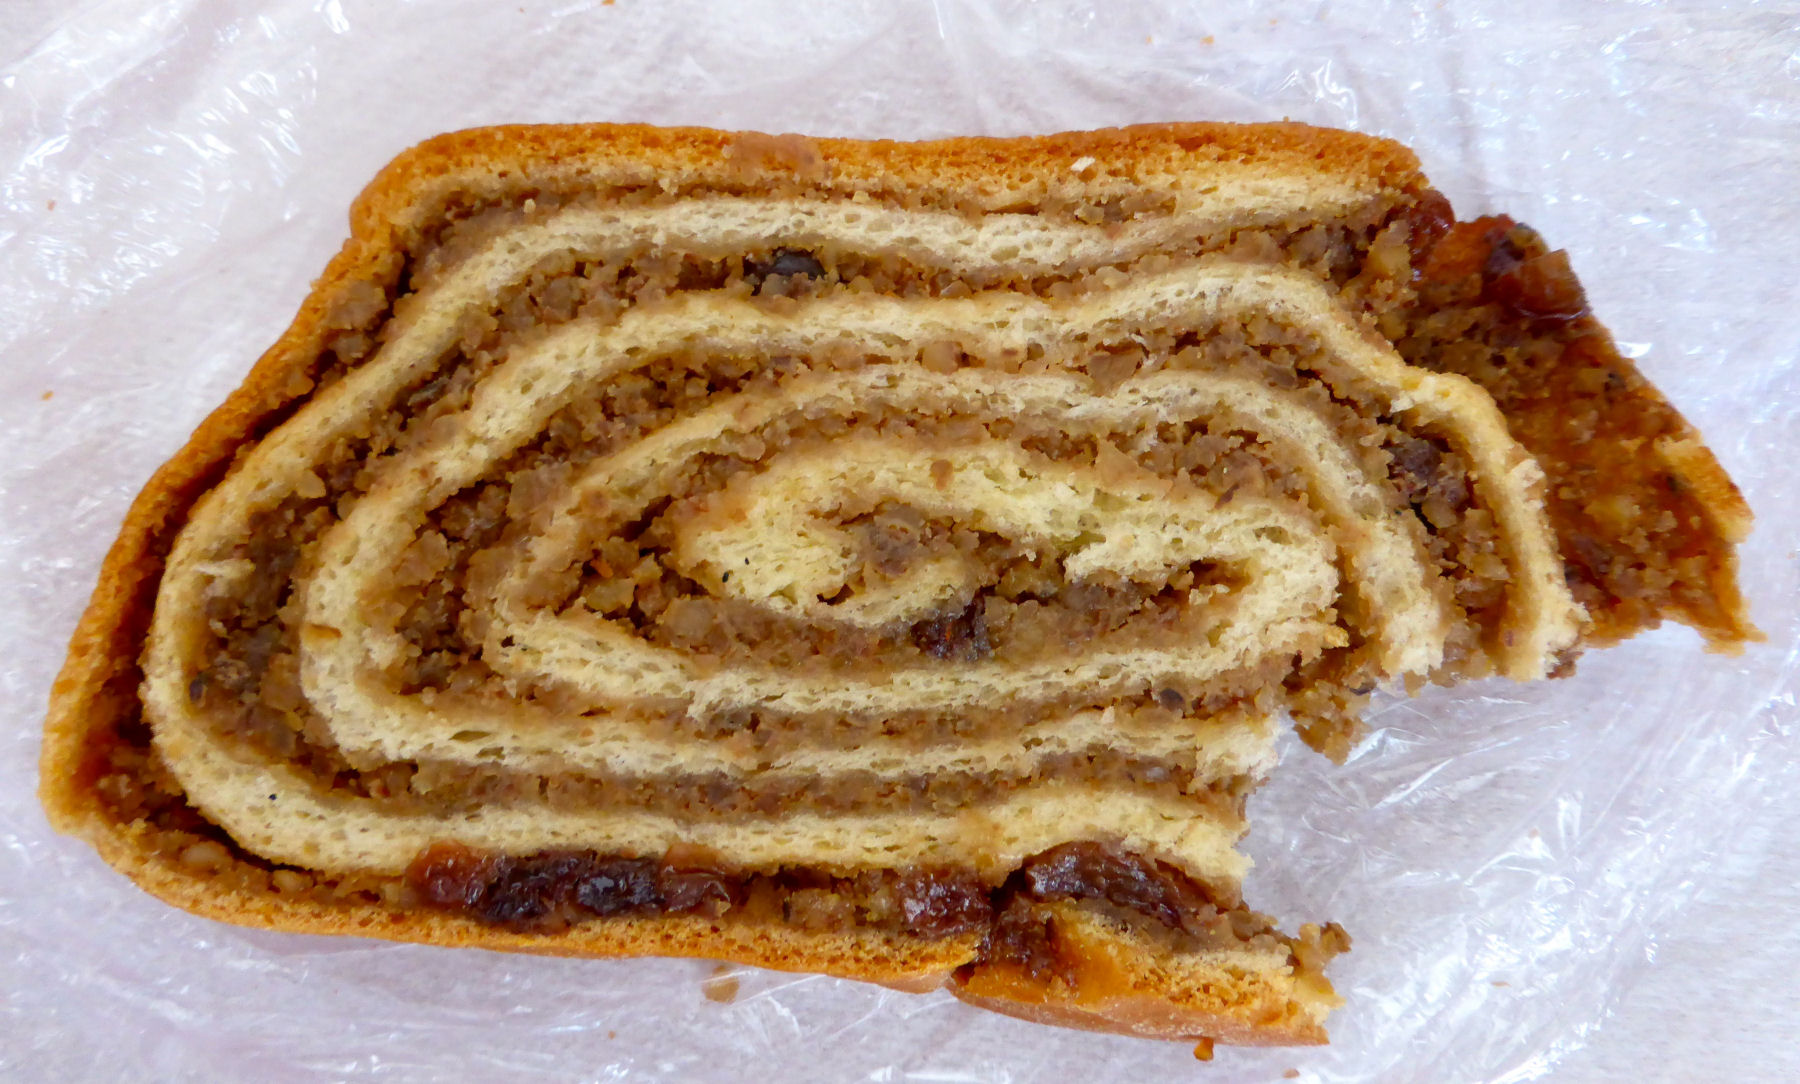 Potica is a traditional Slovenian pastry